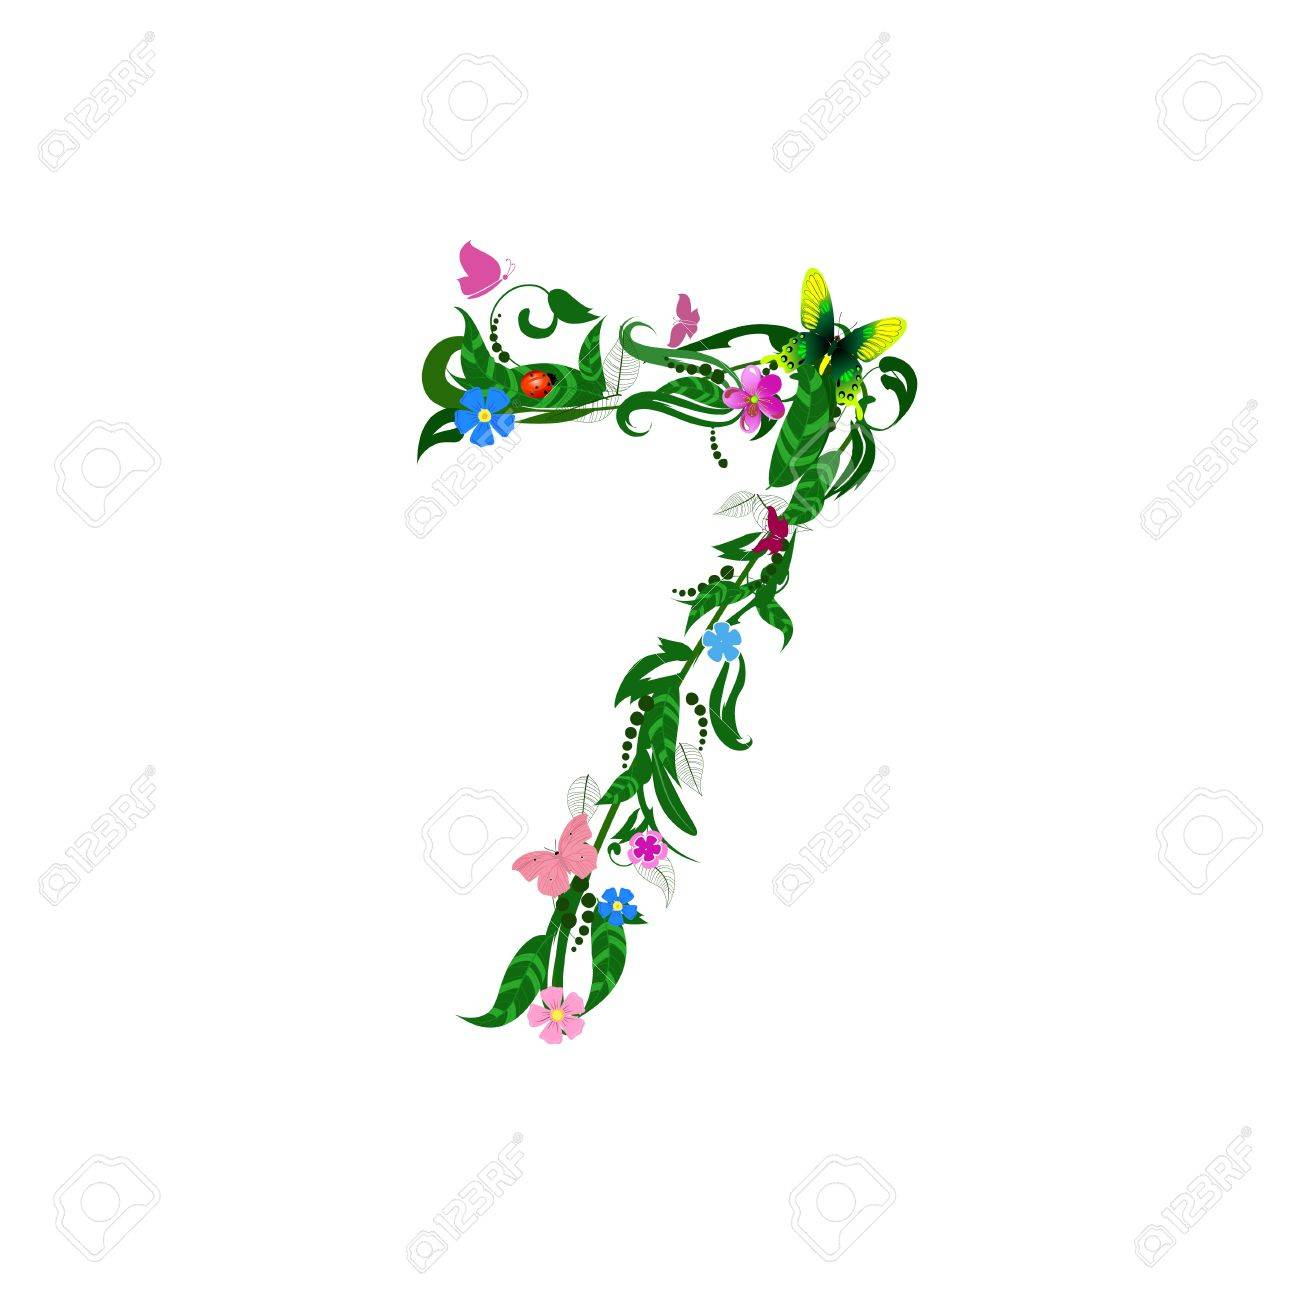 Flower number of butterflies Stock Vector - 9829063